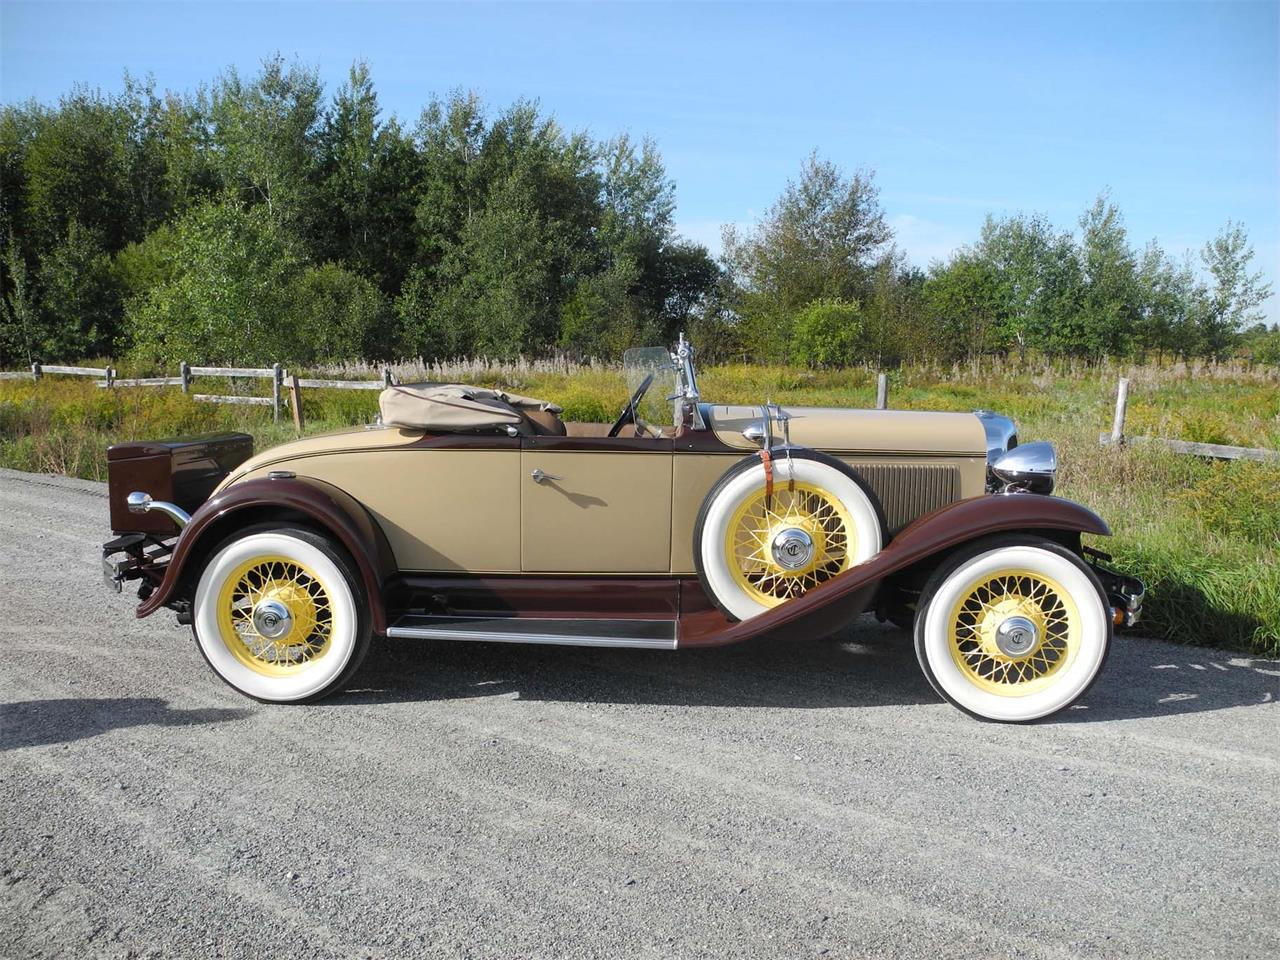 Large Picture of '31 Chrysler CM-6 located in Ontario - $69,500.00 Offered by R & R Classic Cars - JEYZ